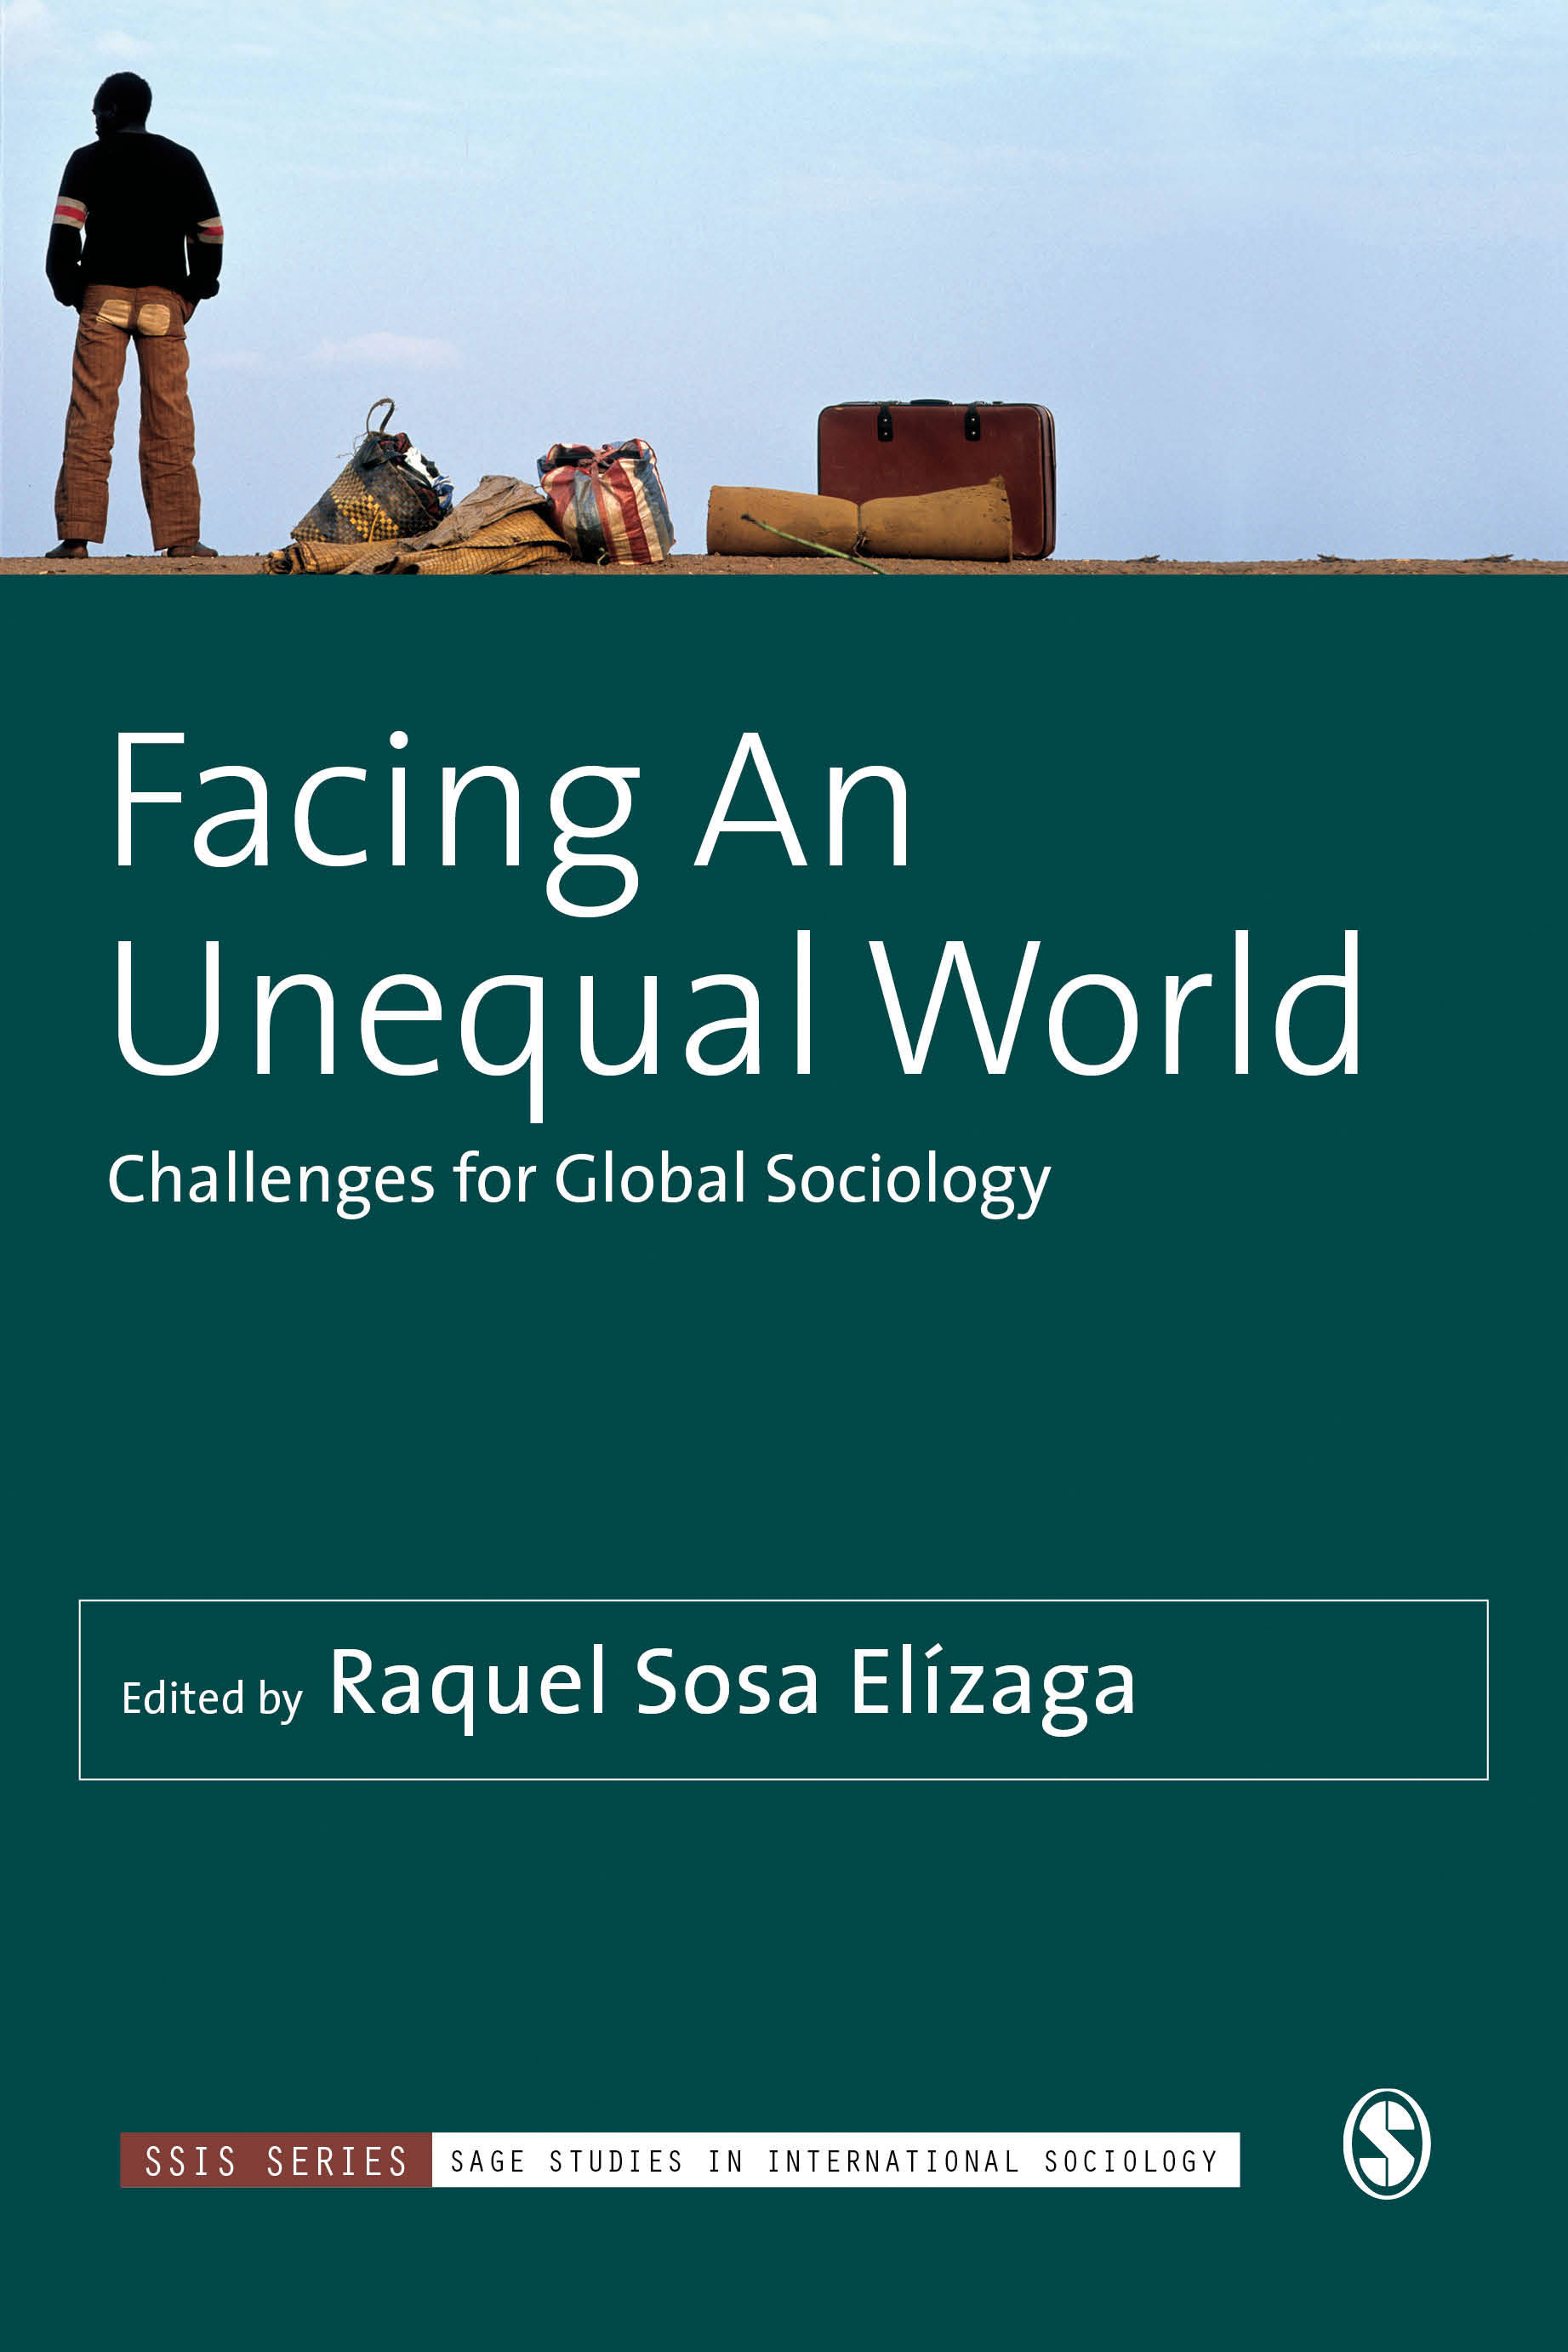 Facing An Unequal World